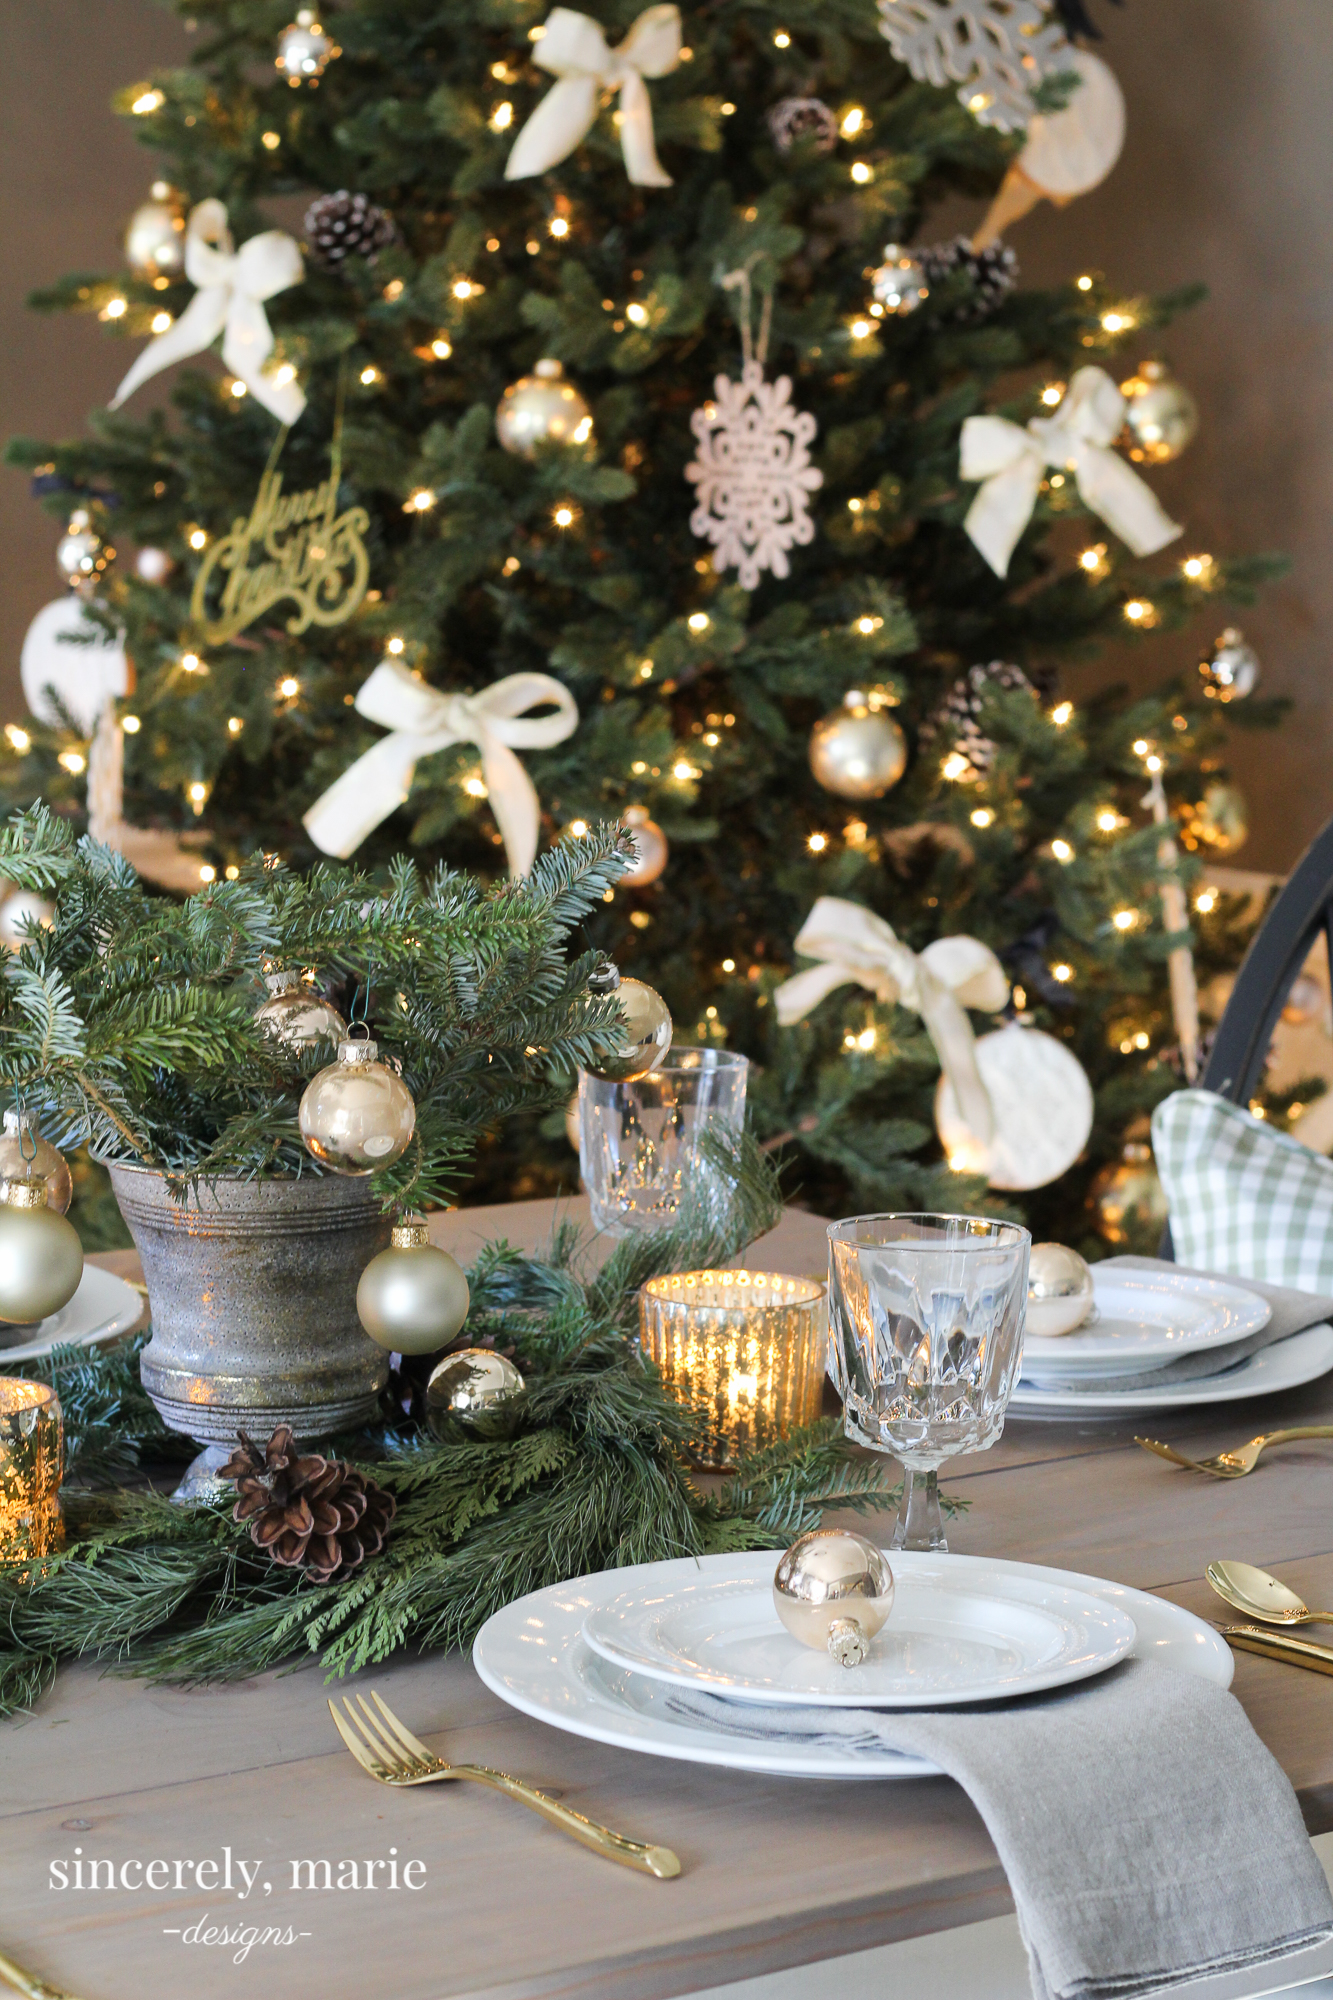 An Elegant Christmas Tablescape Sincerely Marie Designs